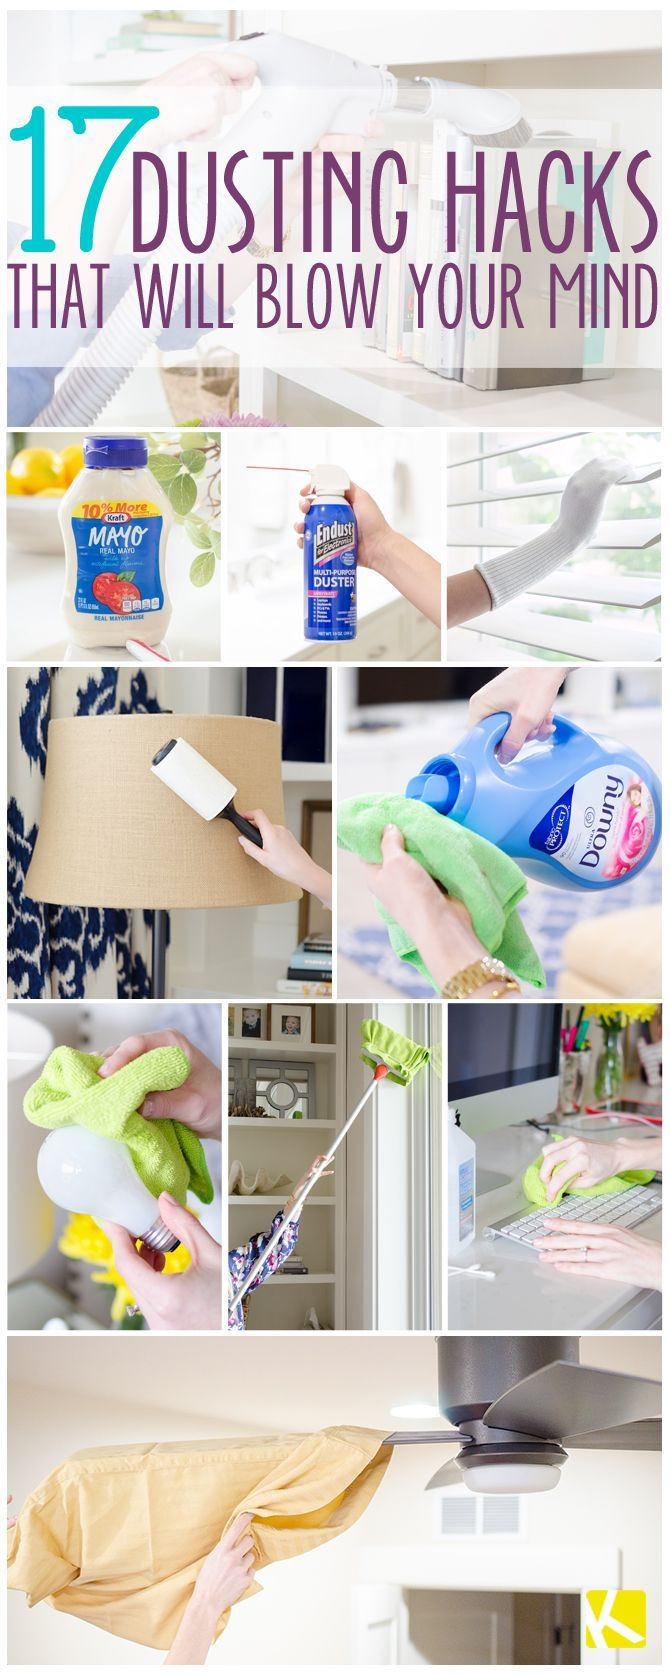 8 Incredible Ways to Dust That Will Blow Your Mind   Cleaning ...